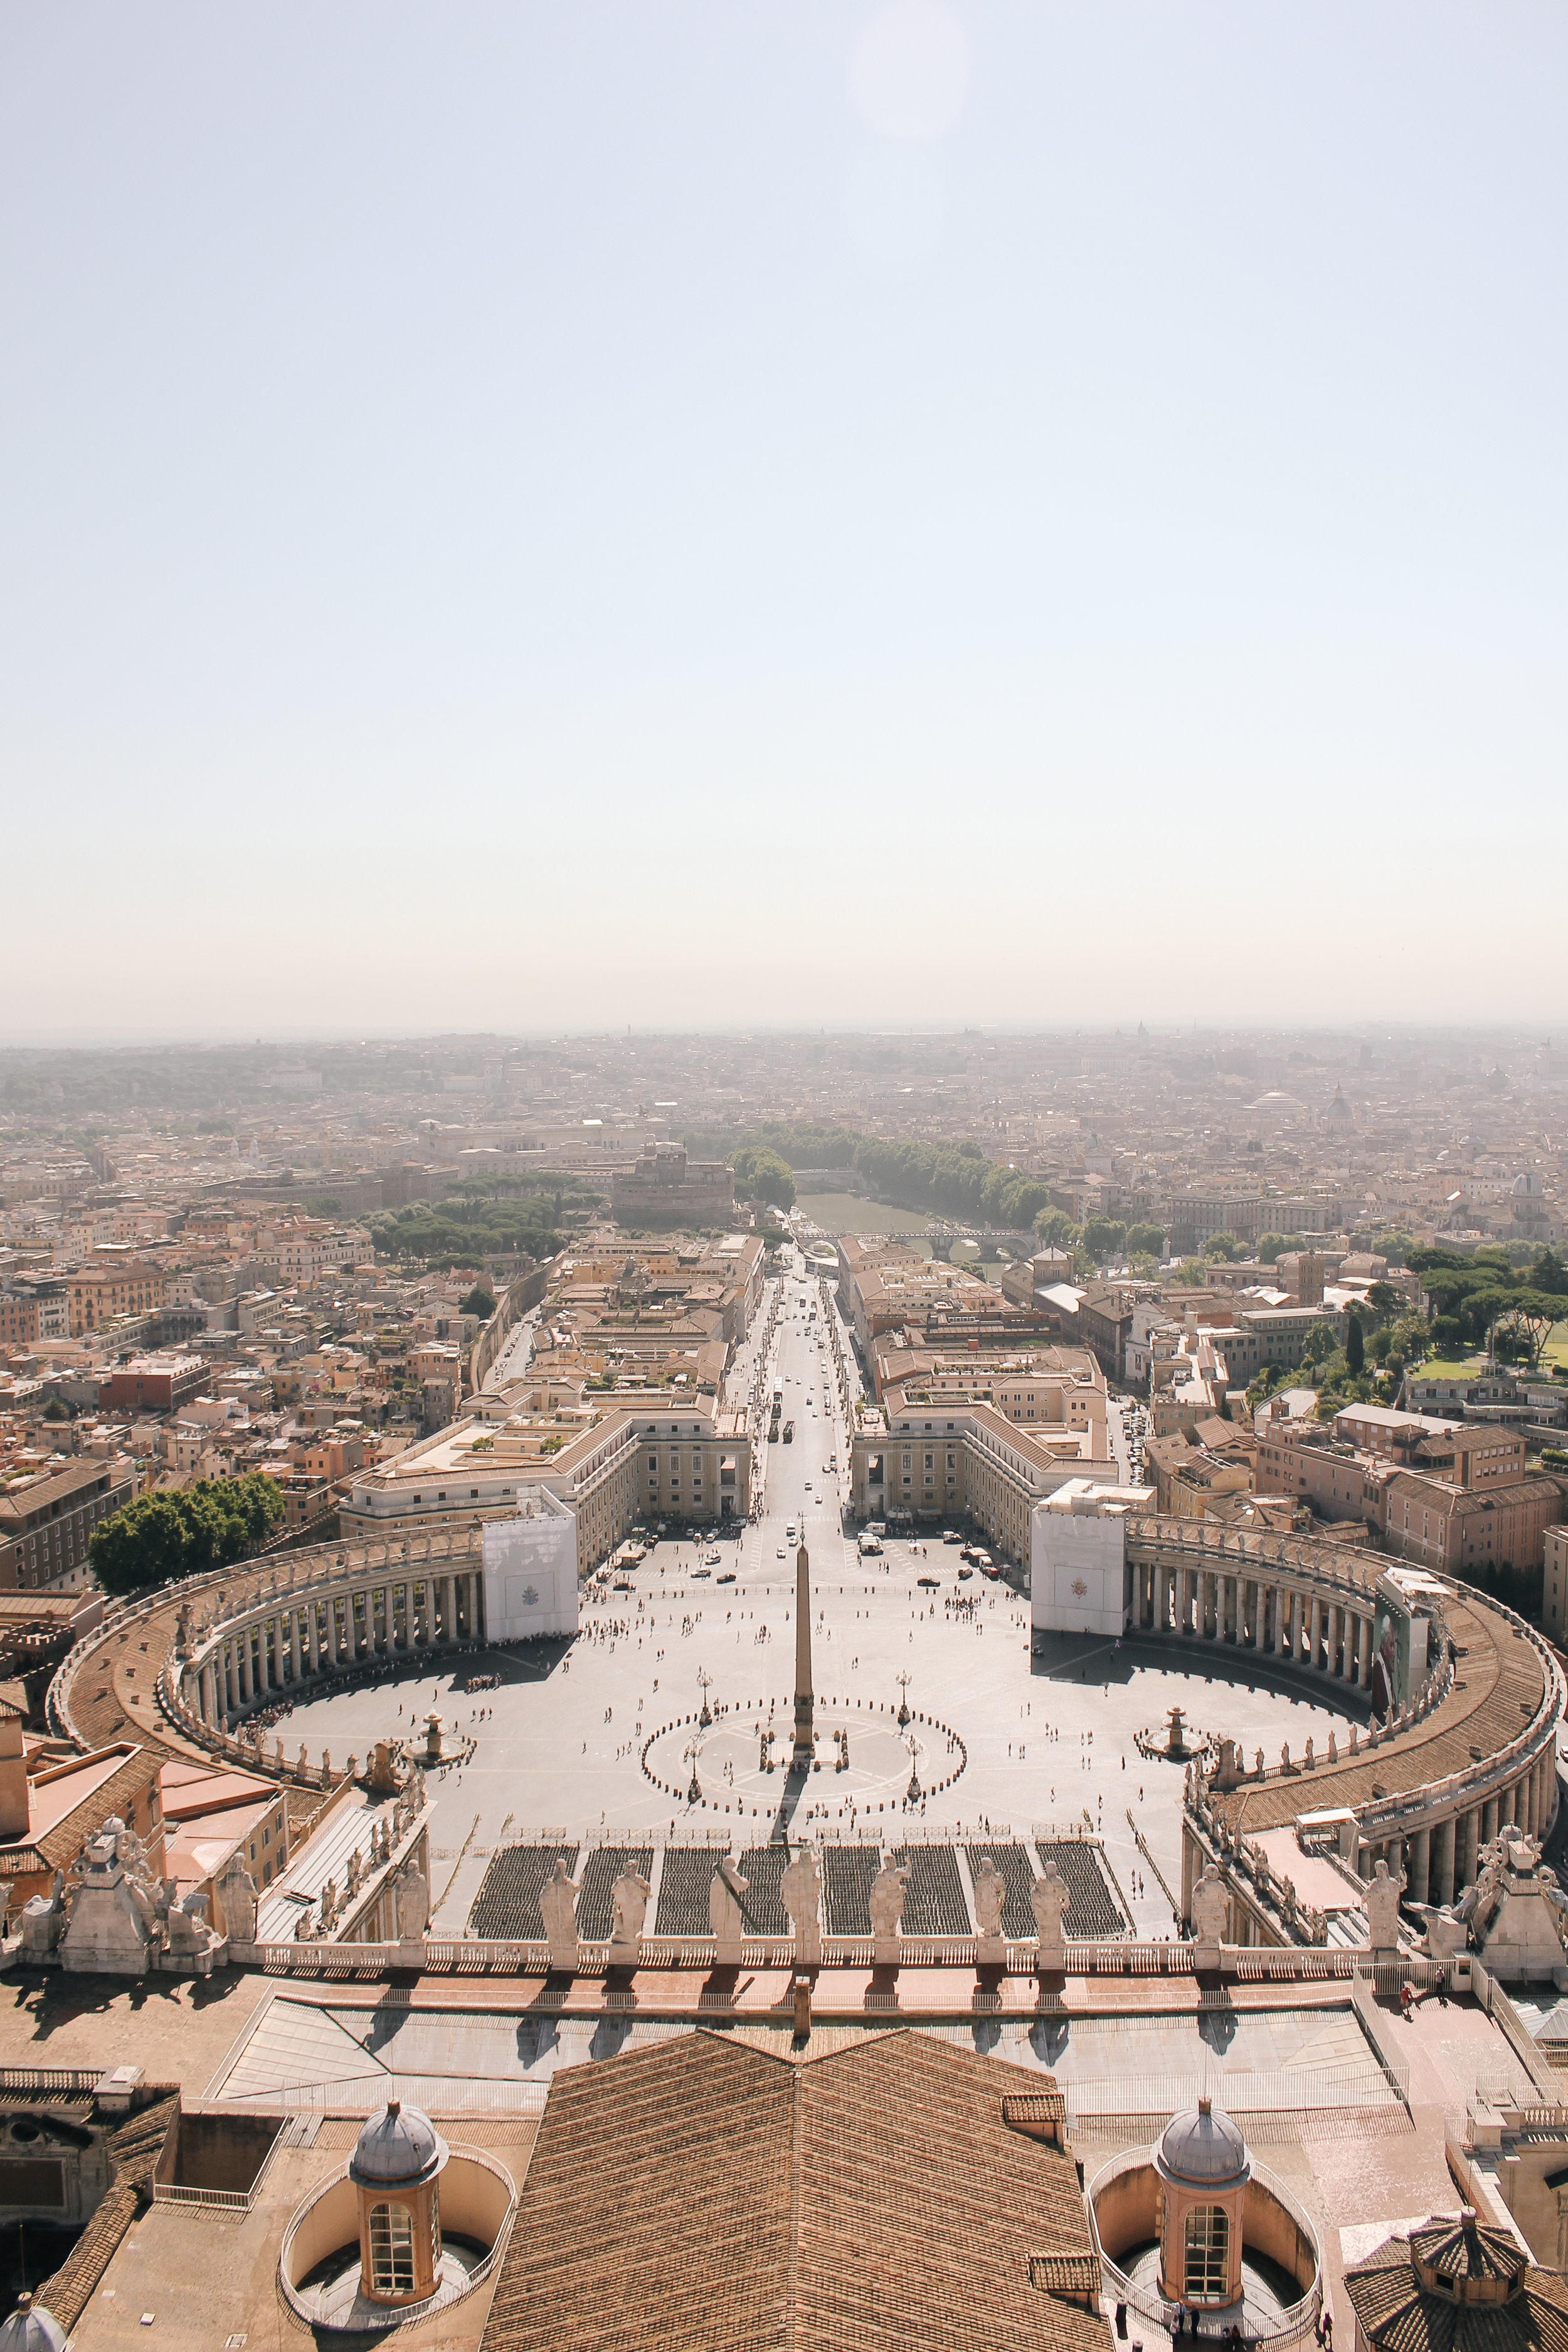 View of Rome from the Dome of St. Peter's Basilica